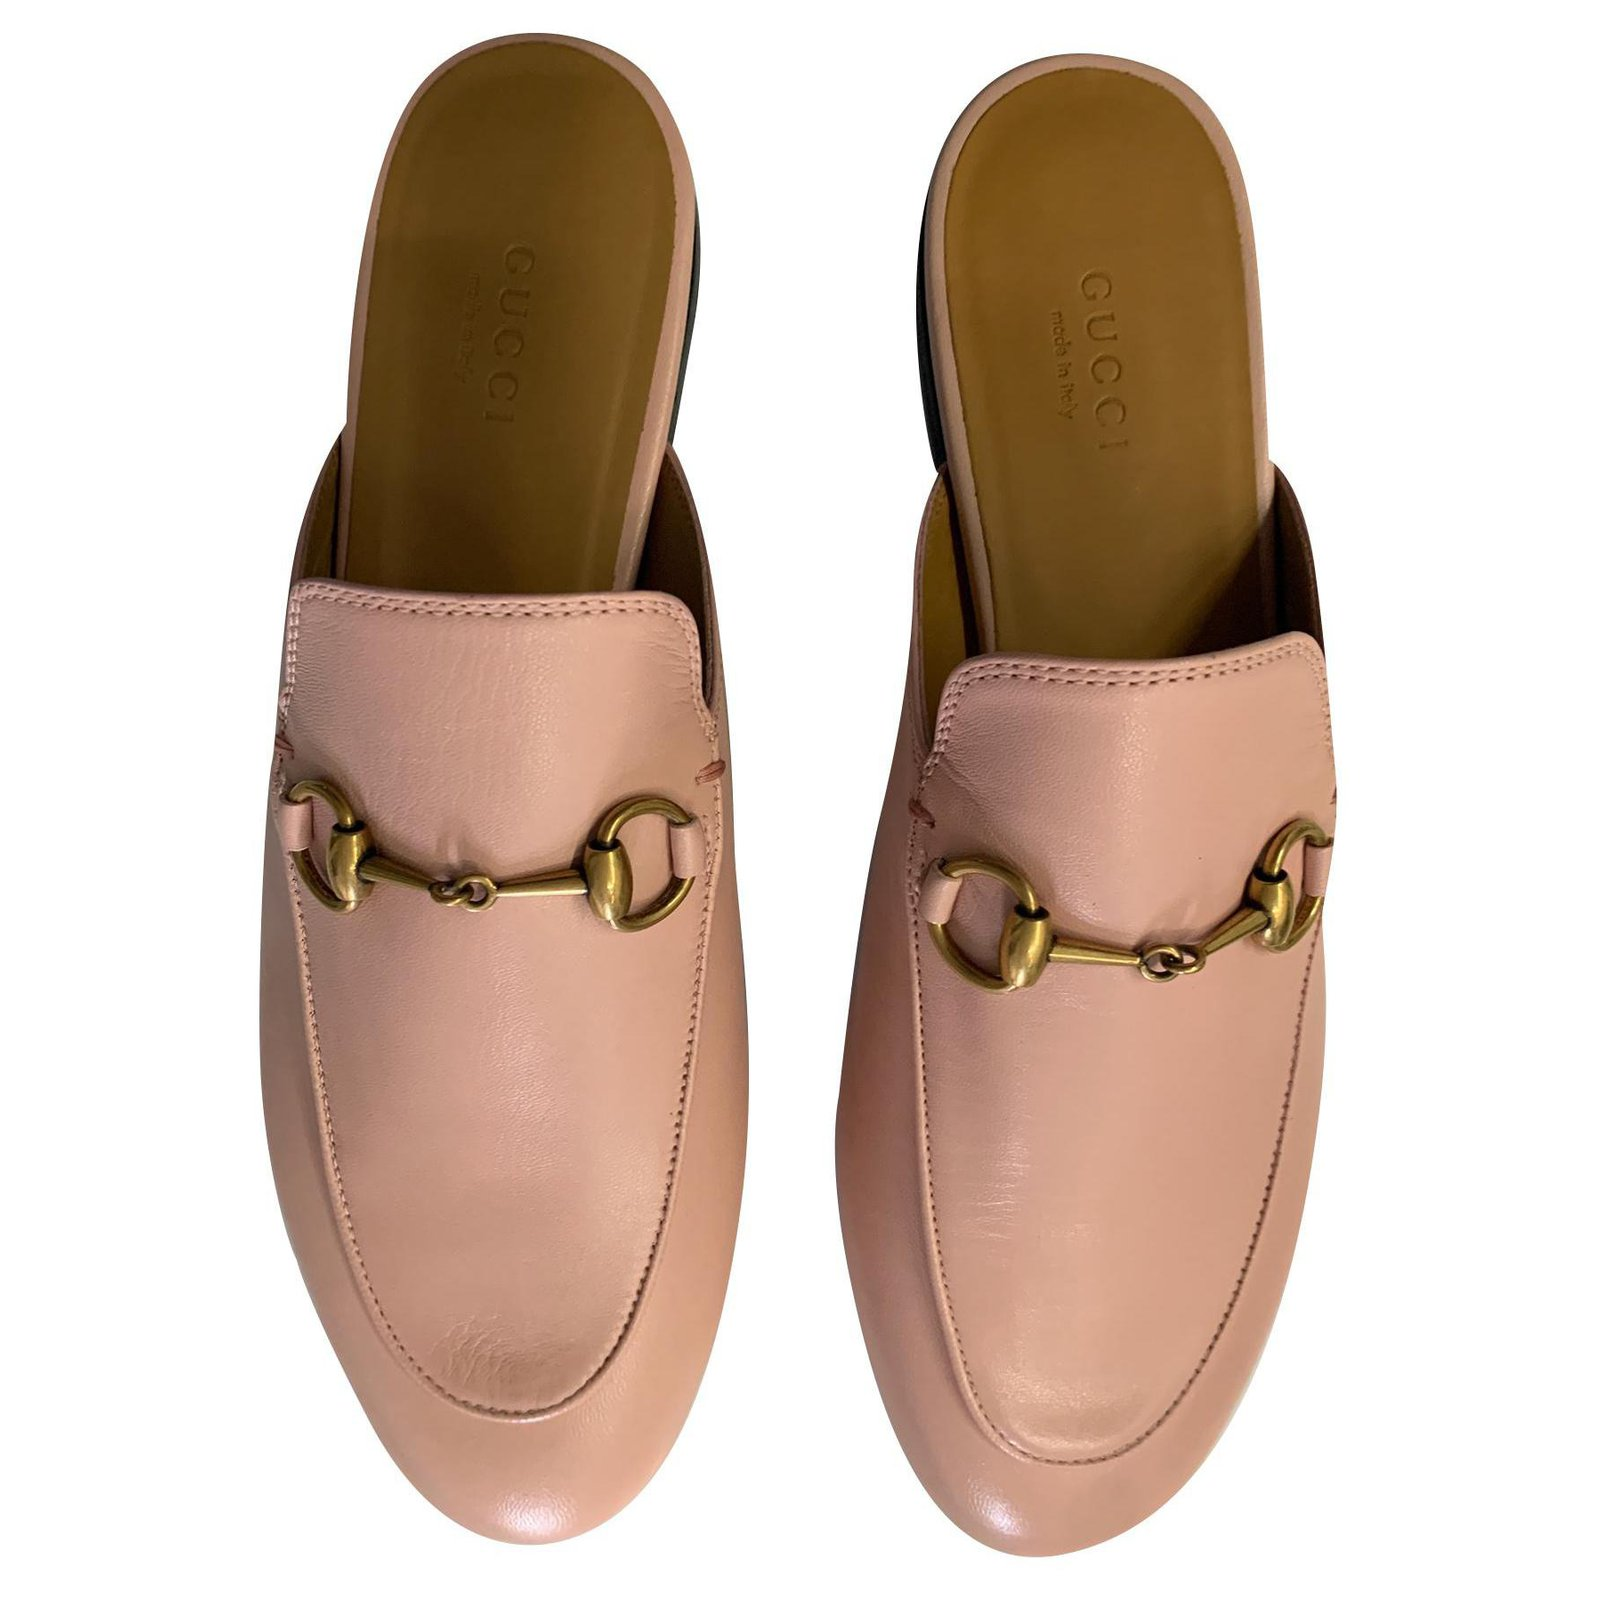 Gucci GUCCI Princetown Leather Mules